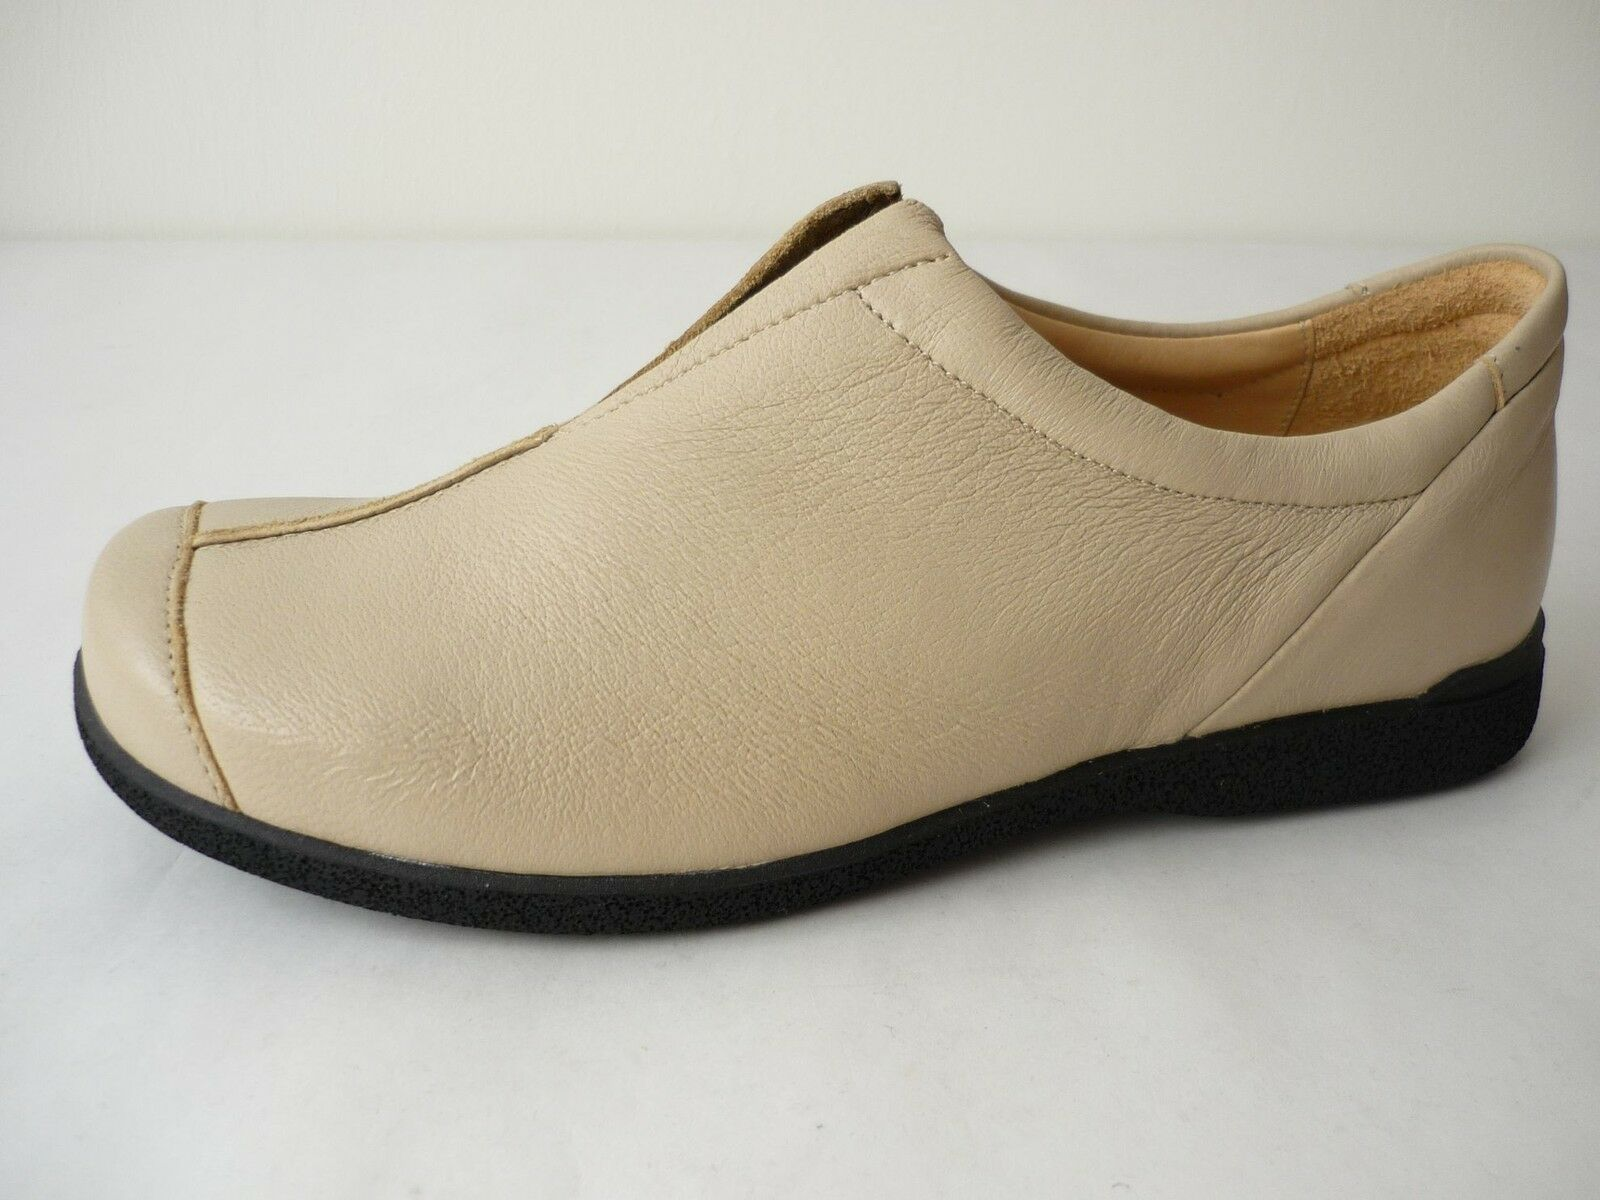 Highlander Femme Chaussures Basses 38,5 41,5 Chaussures beige en cuir chaussures for woman NEUF